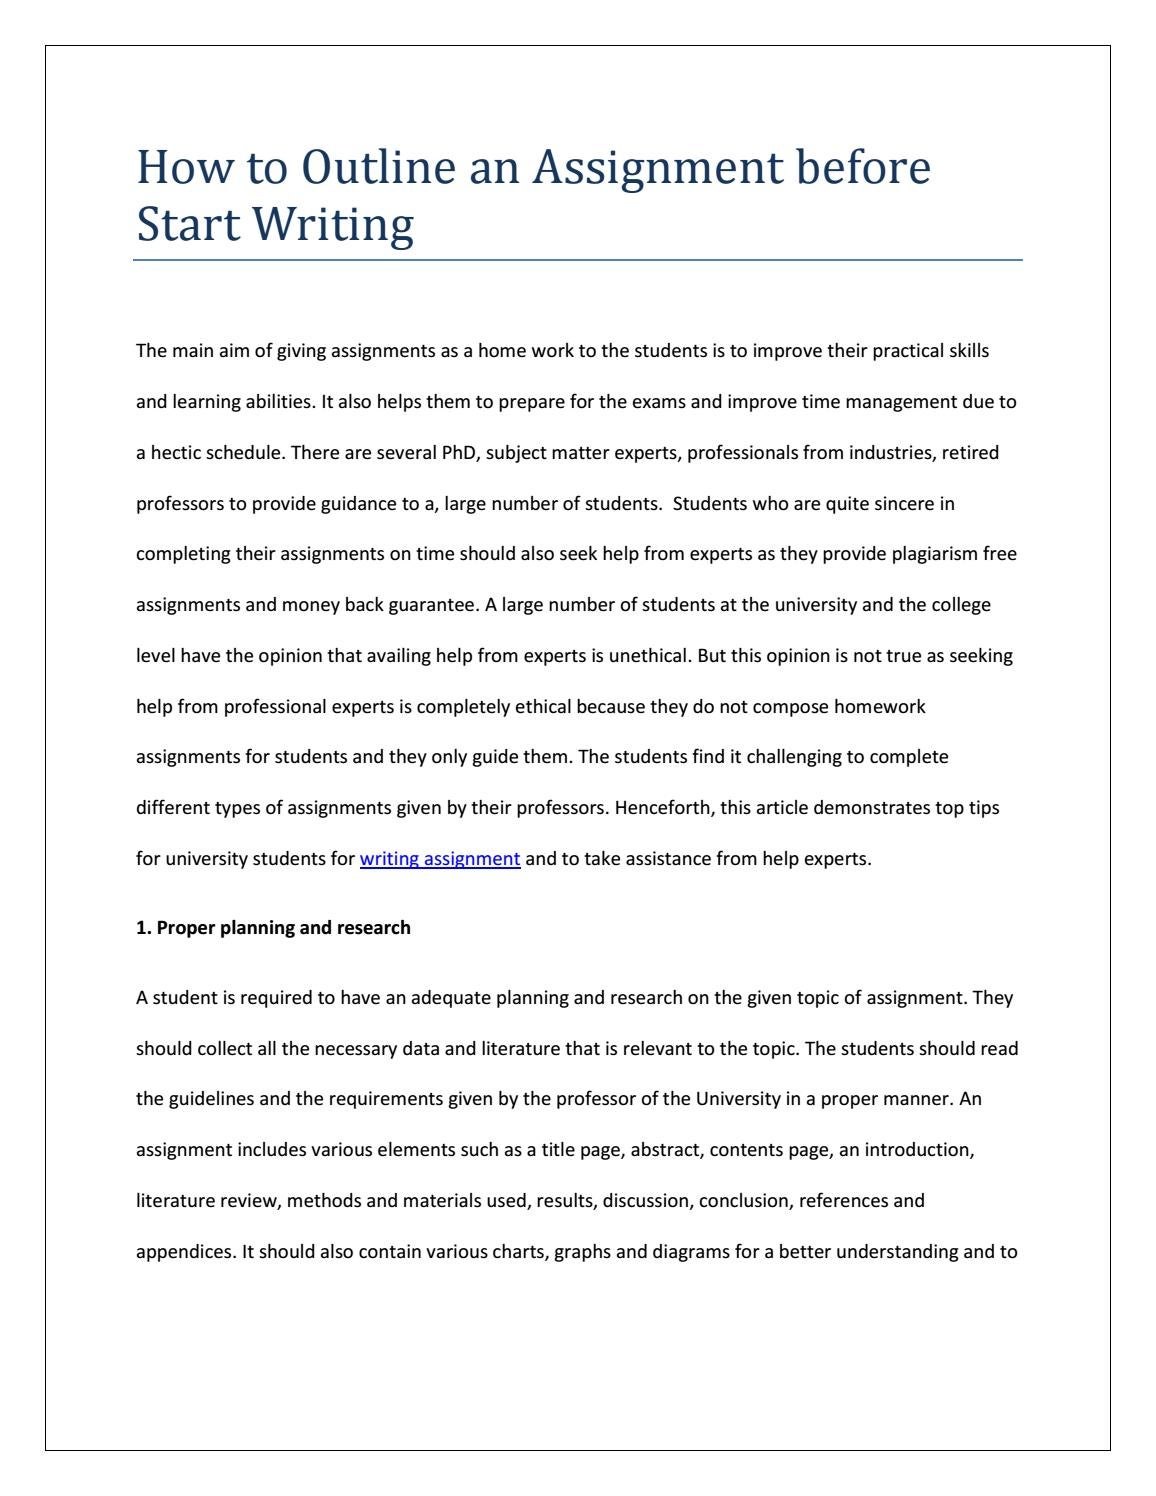 How To Start An Assignment For University